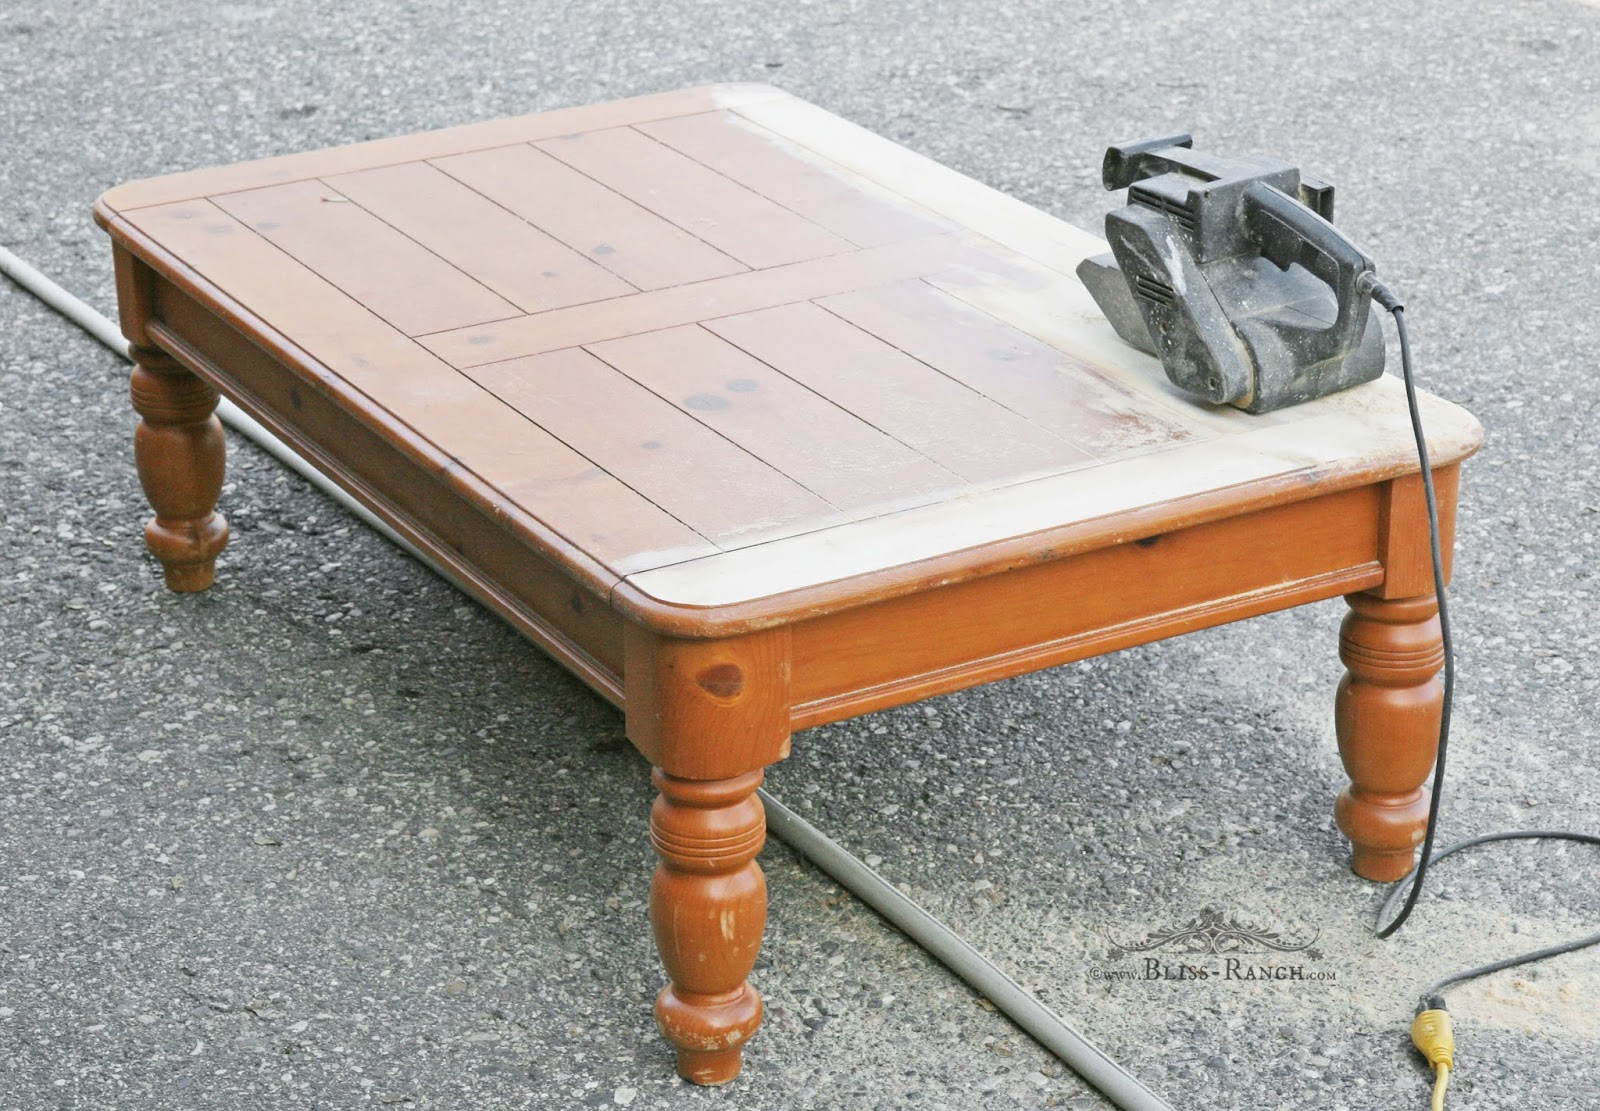 Bliss ranch pine coffee table makeover for Coffee table makeover ideas